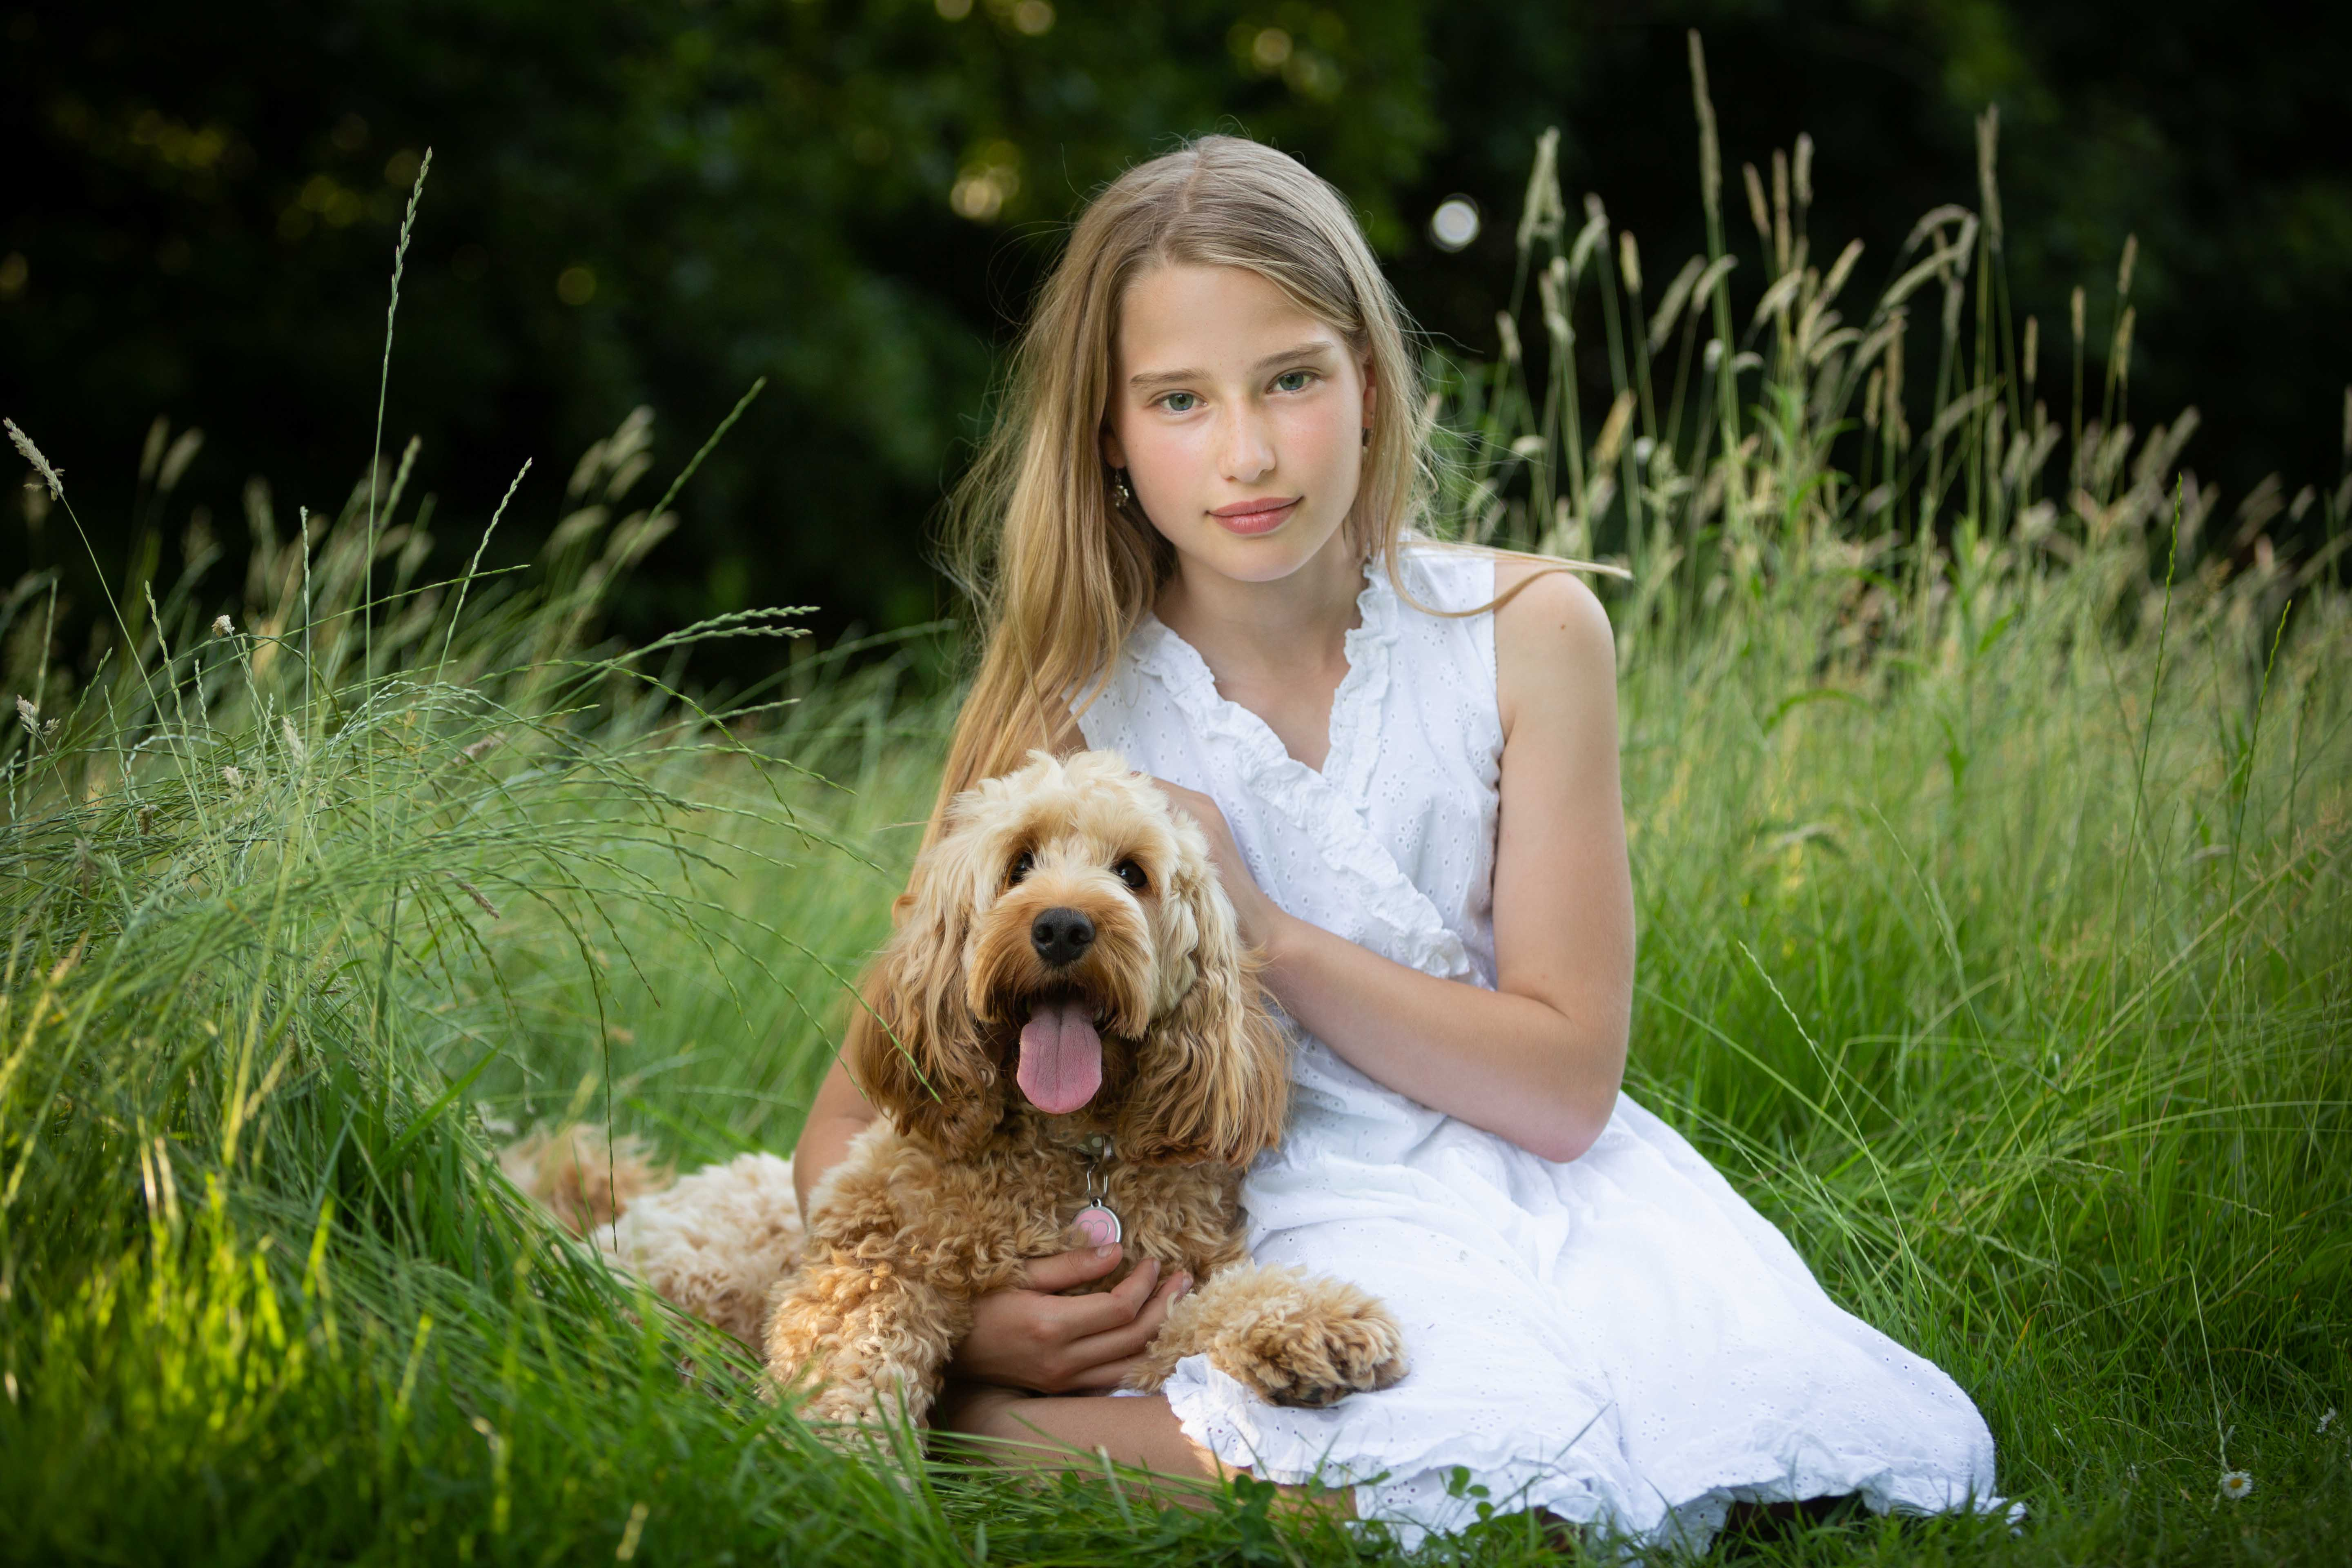 St Albans Photographer photoshoots children outdoors